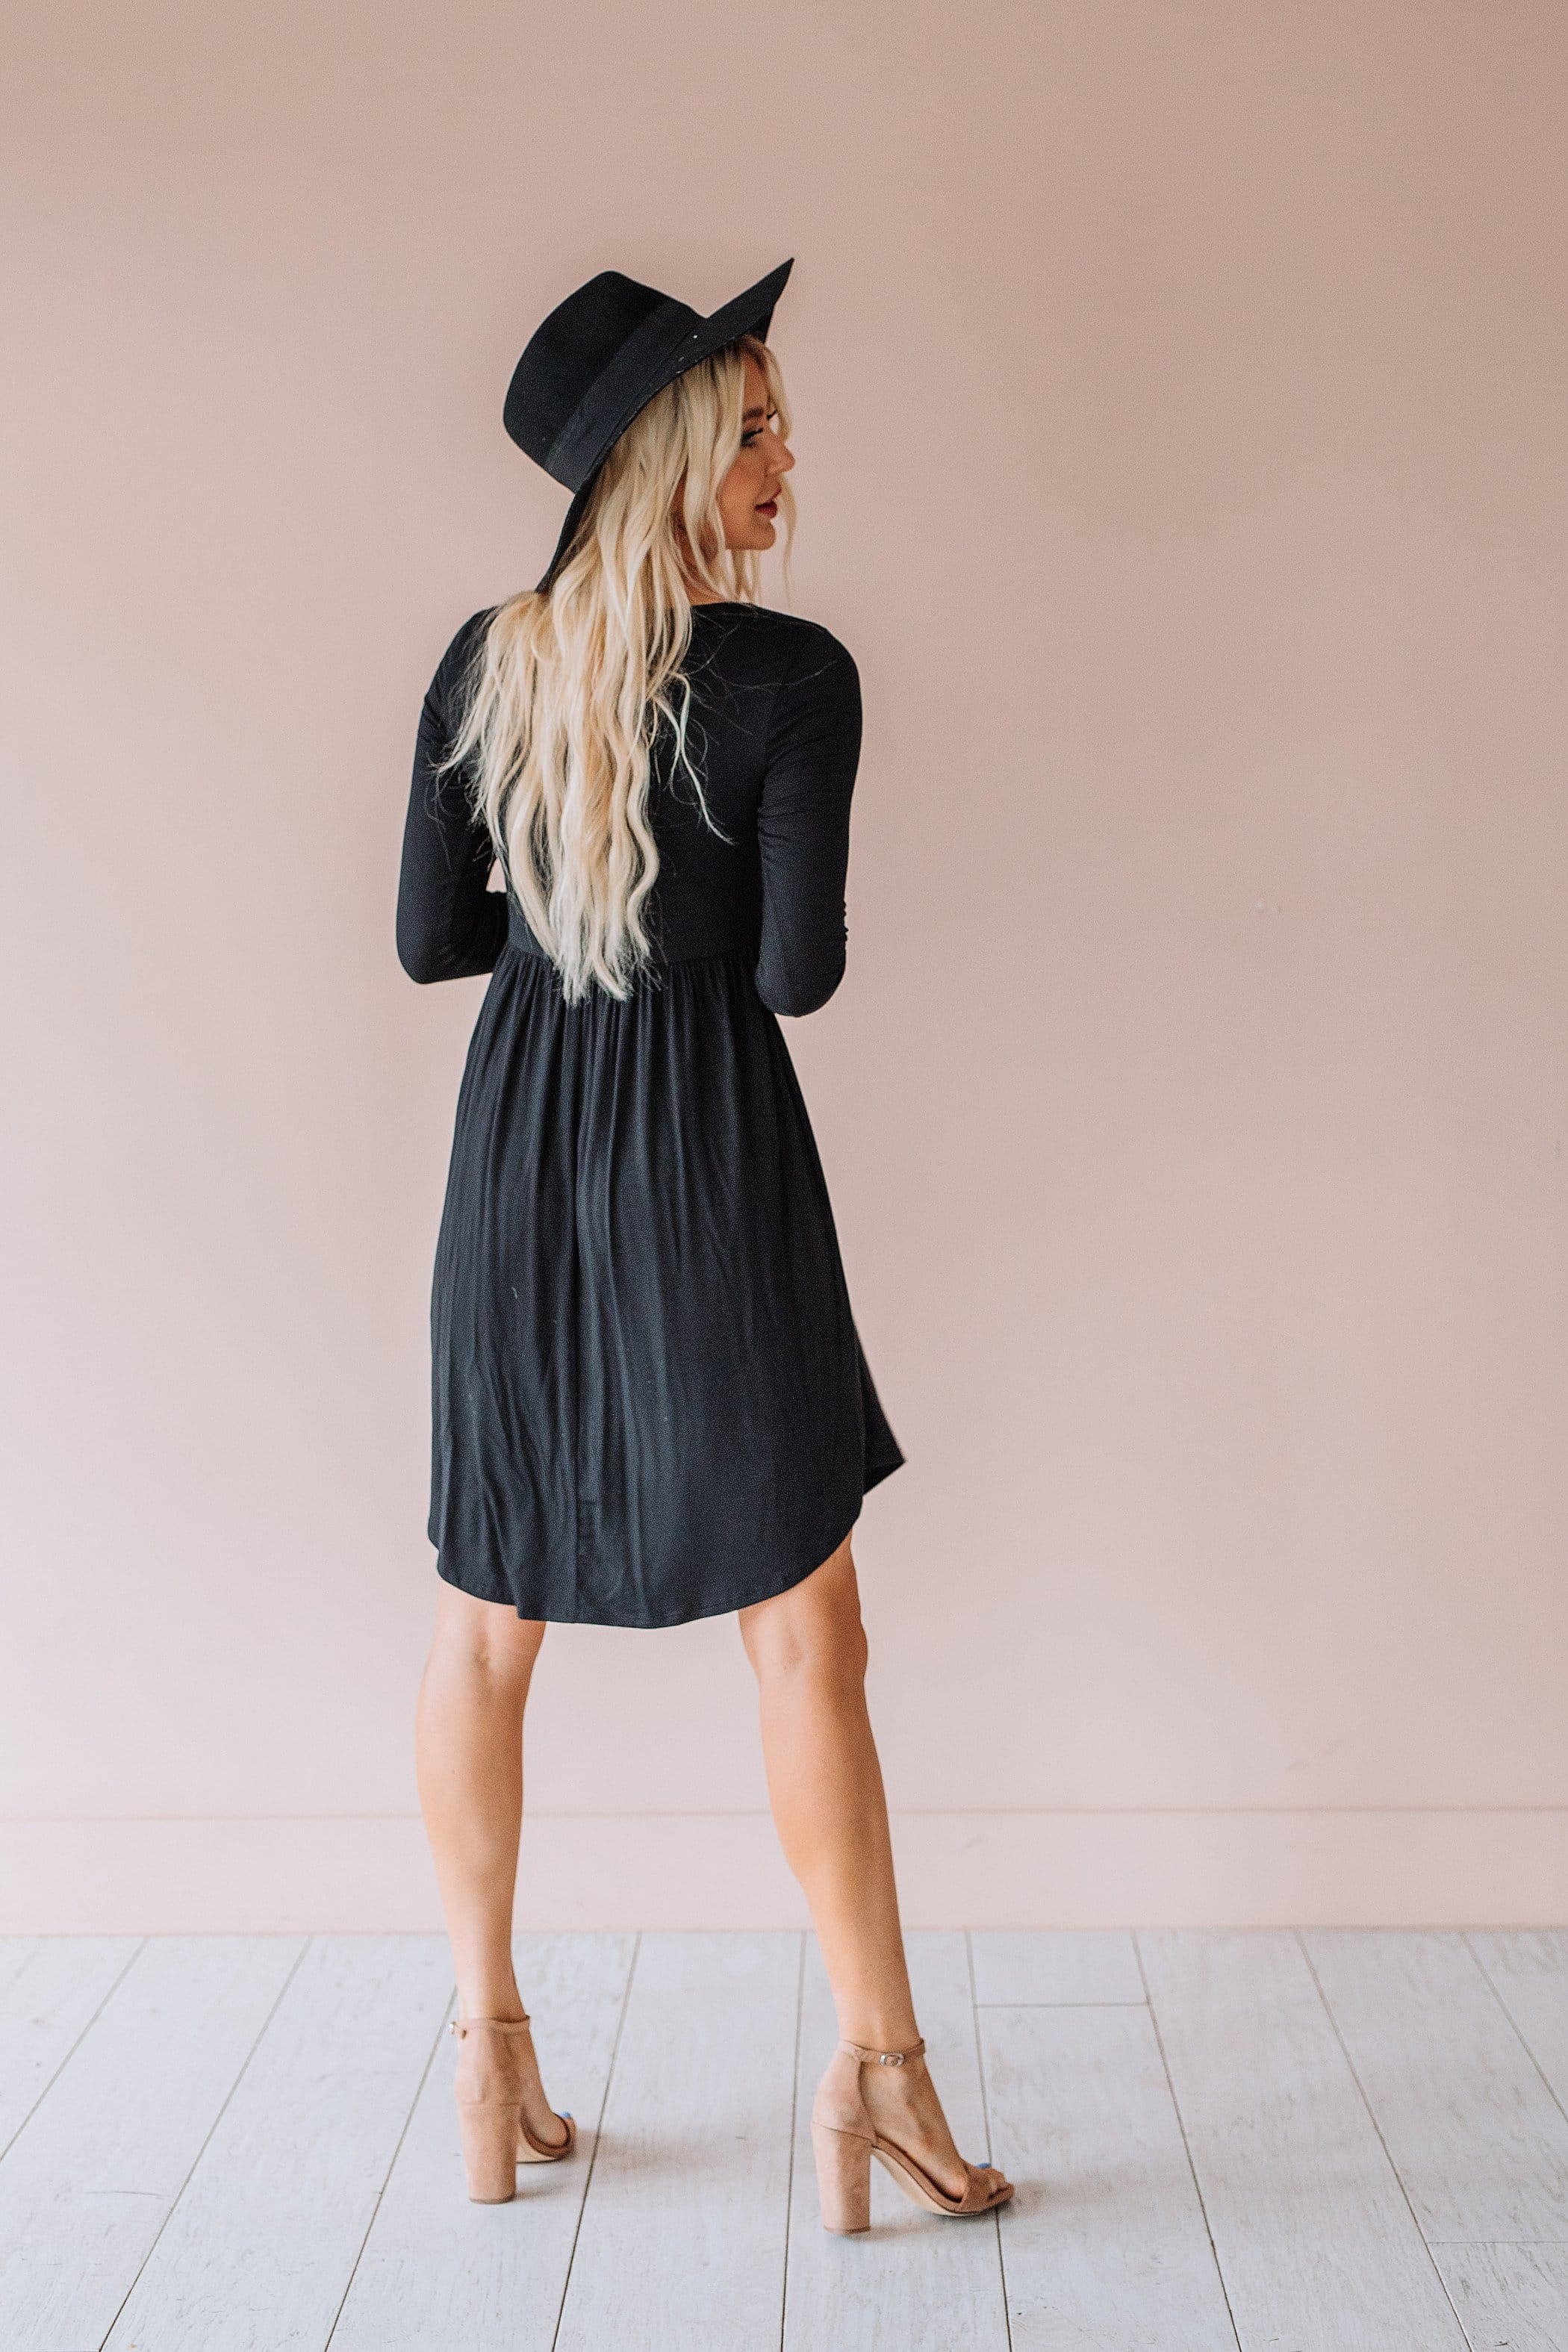 The Muriel Midi Dress in Black and Olive